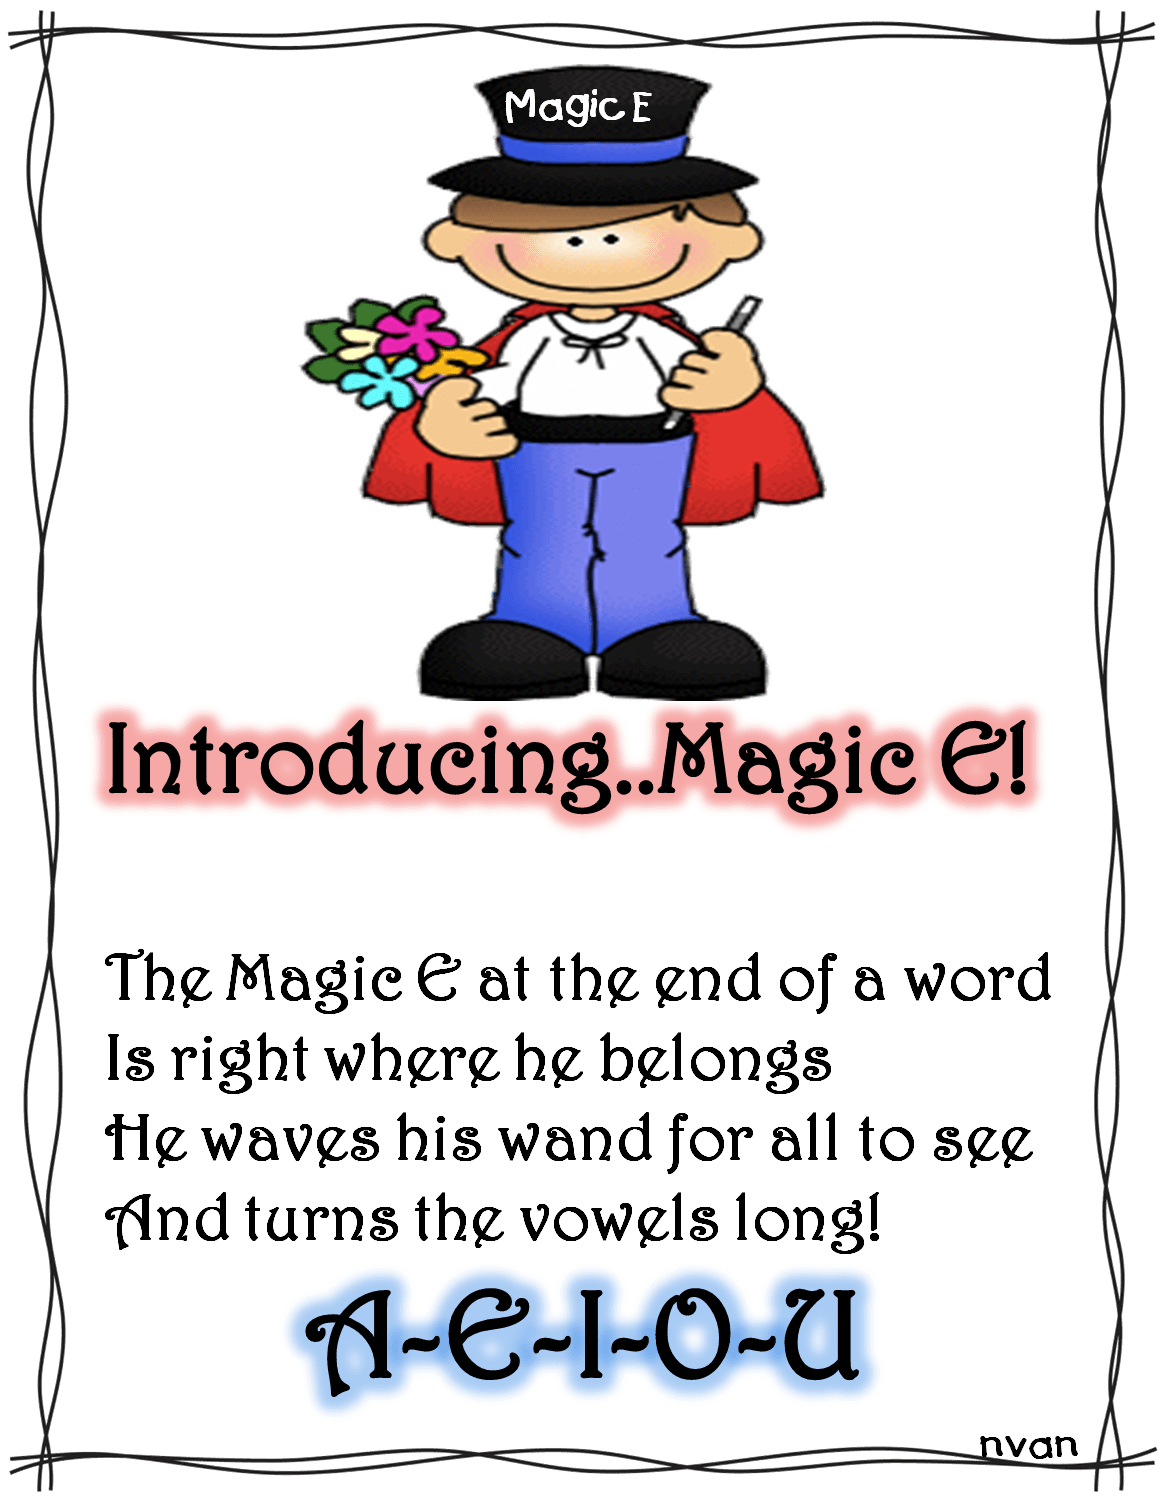 The Magic E